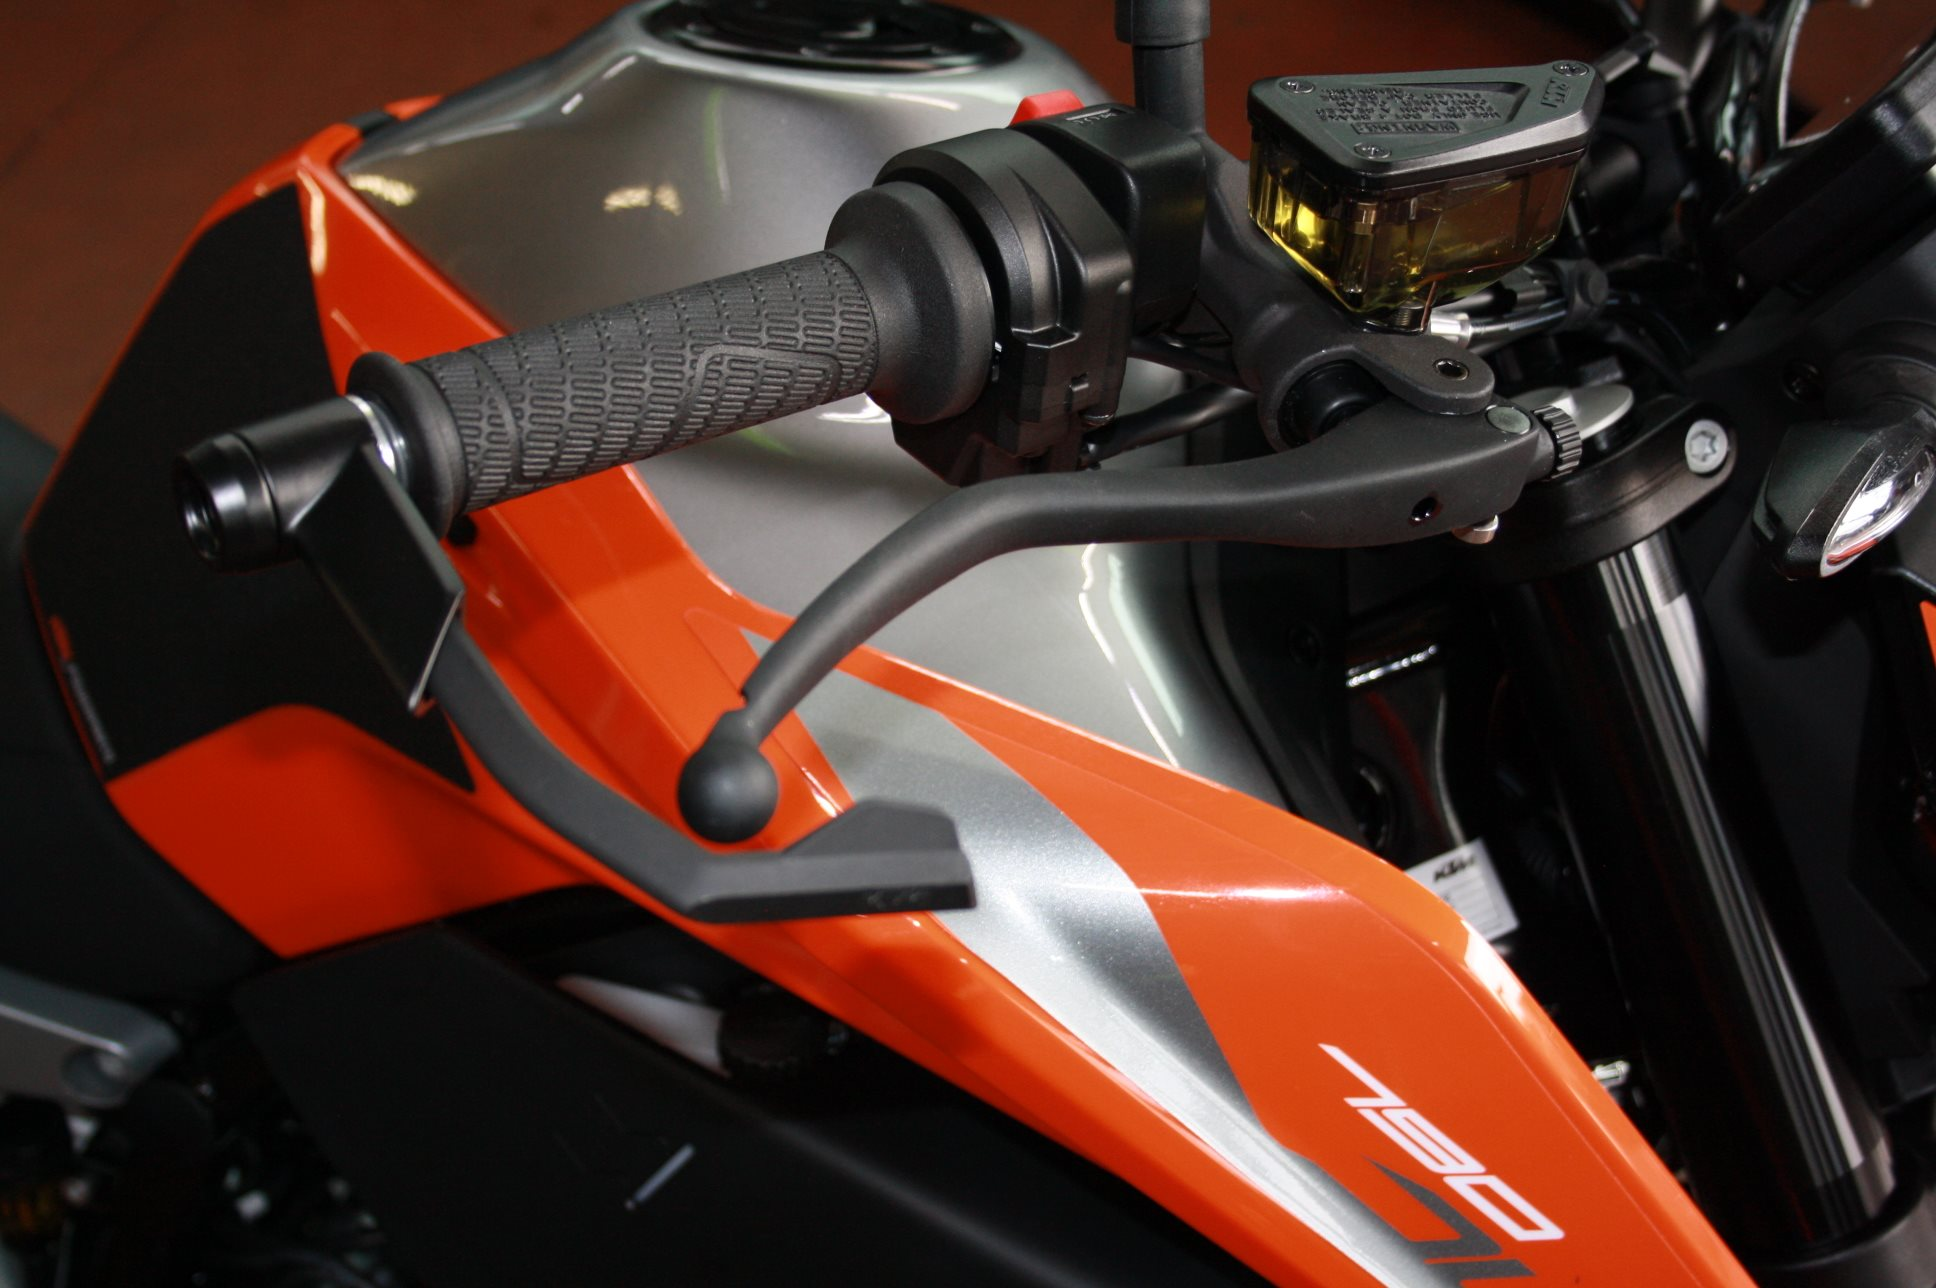 details zum custom bike ktm 790 duke des h ndlers zweirad. Black Bedroom Furniture Sets. Home Design Ideas